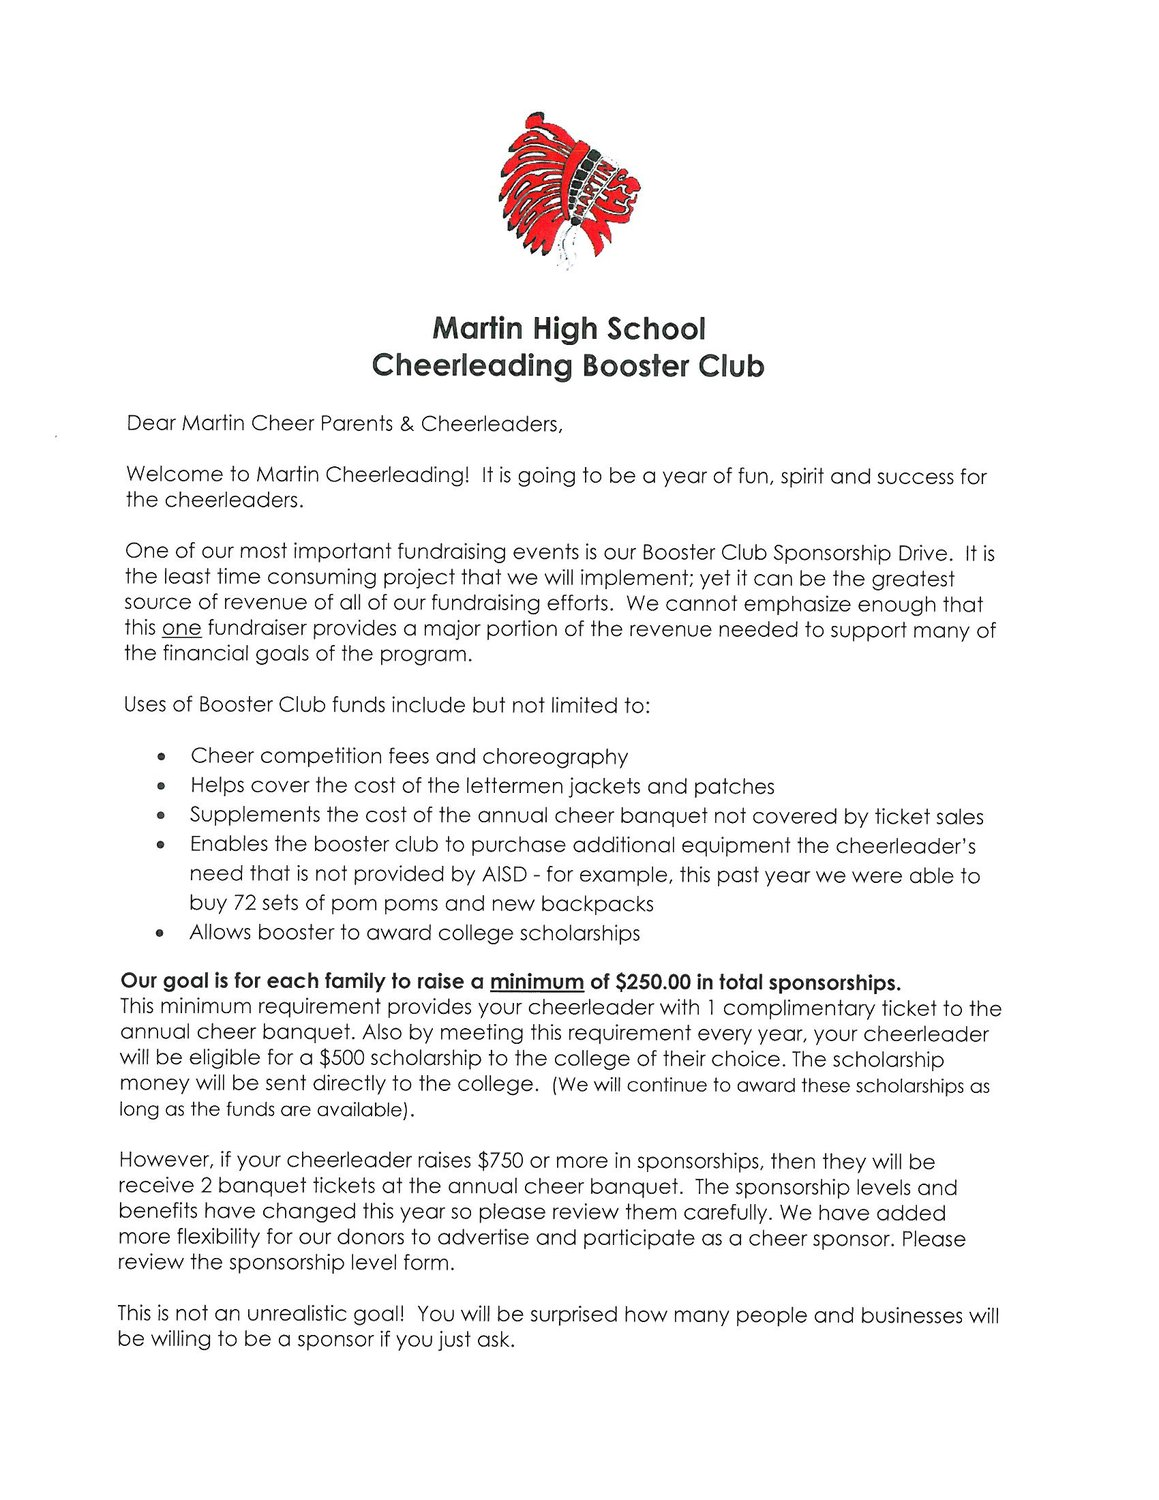 booster club With booster club sponsorship letters